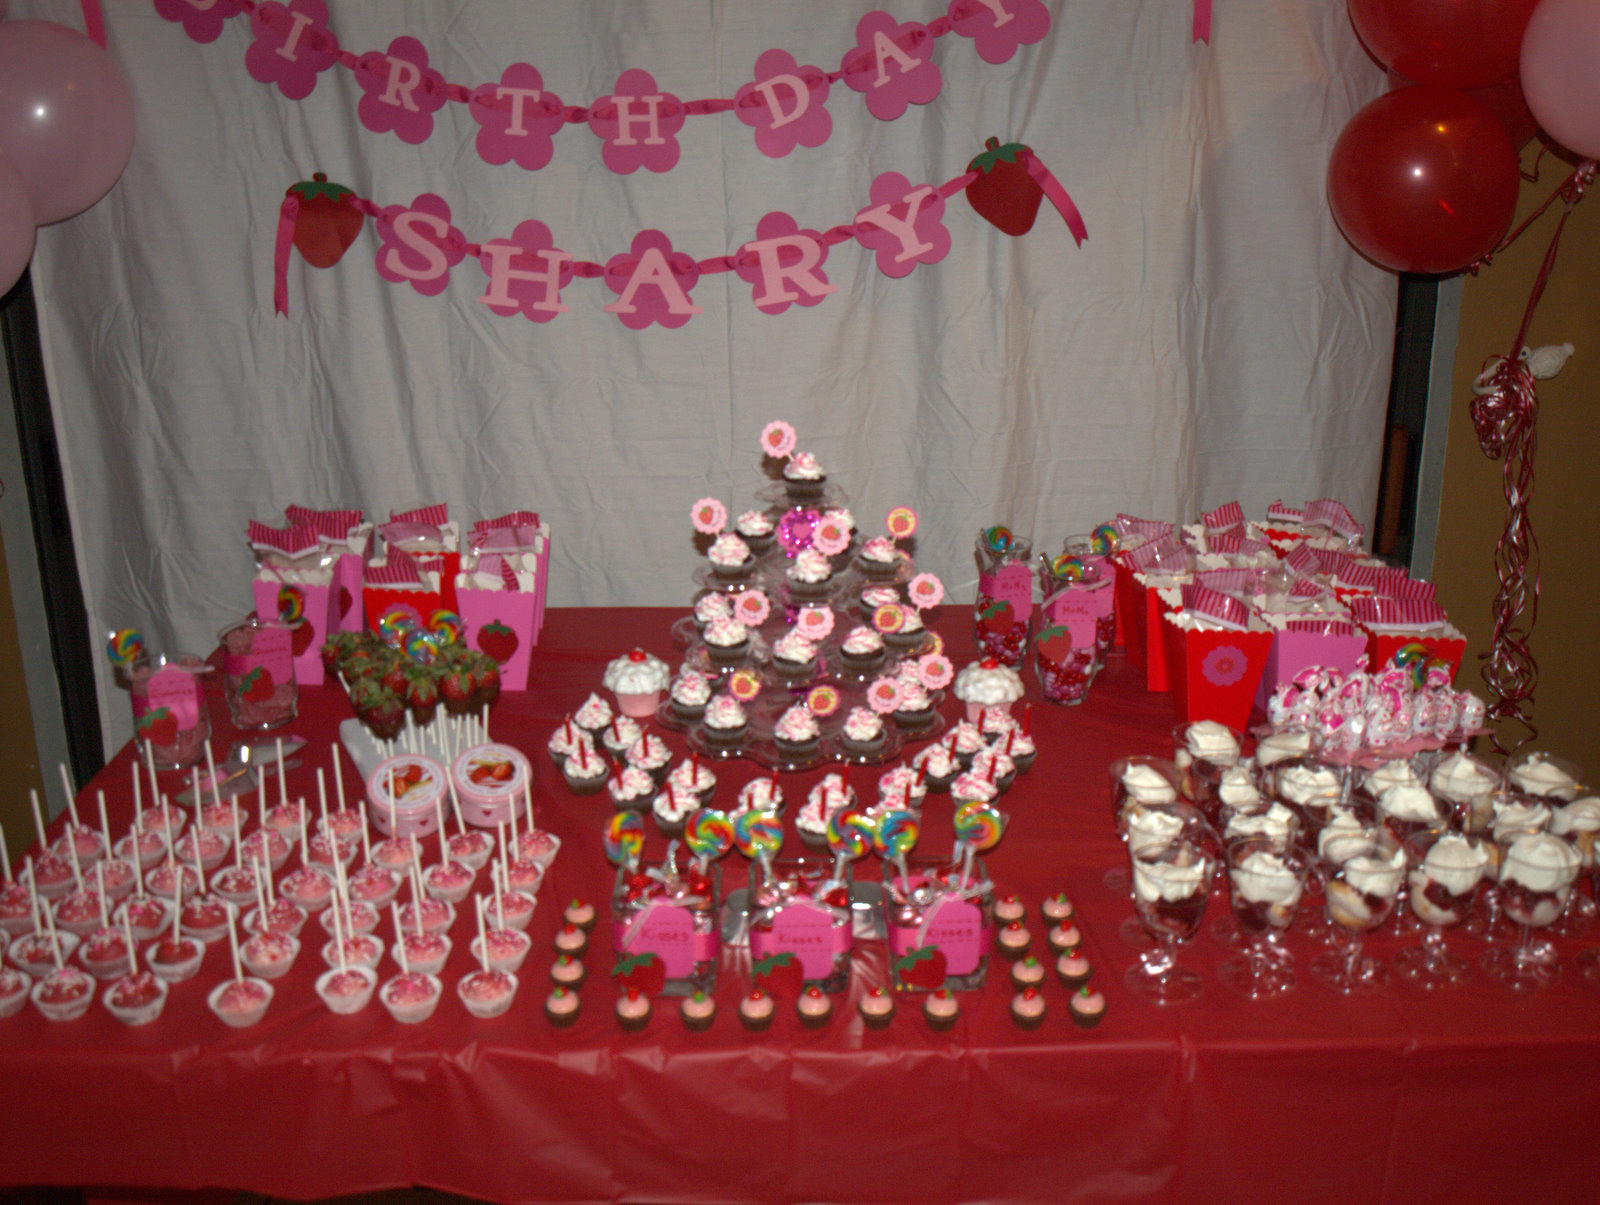 Juneill's Parties & Sweets: March 2011